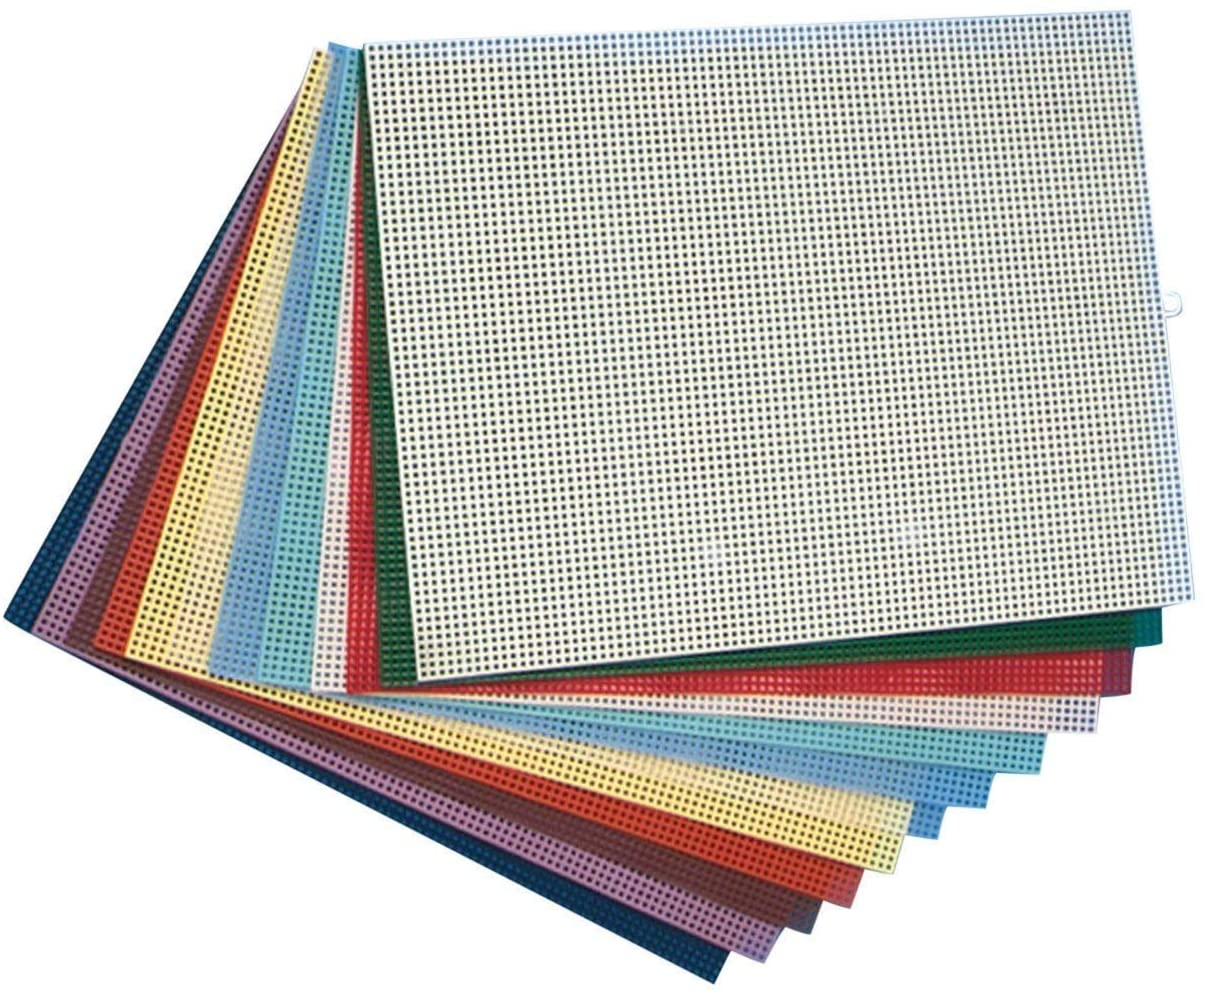 Plastic Price reduction Canvas Sheets 10-1 Virginia Beach Mall 2